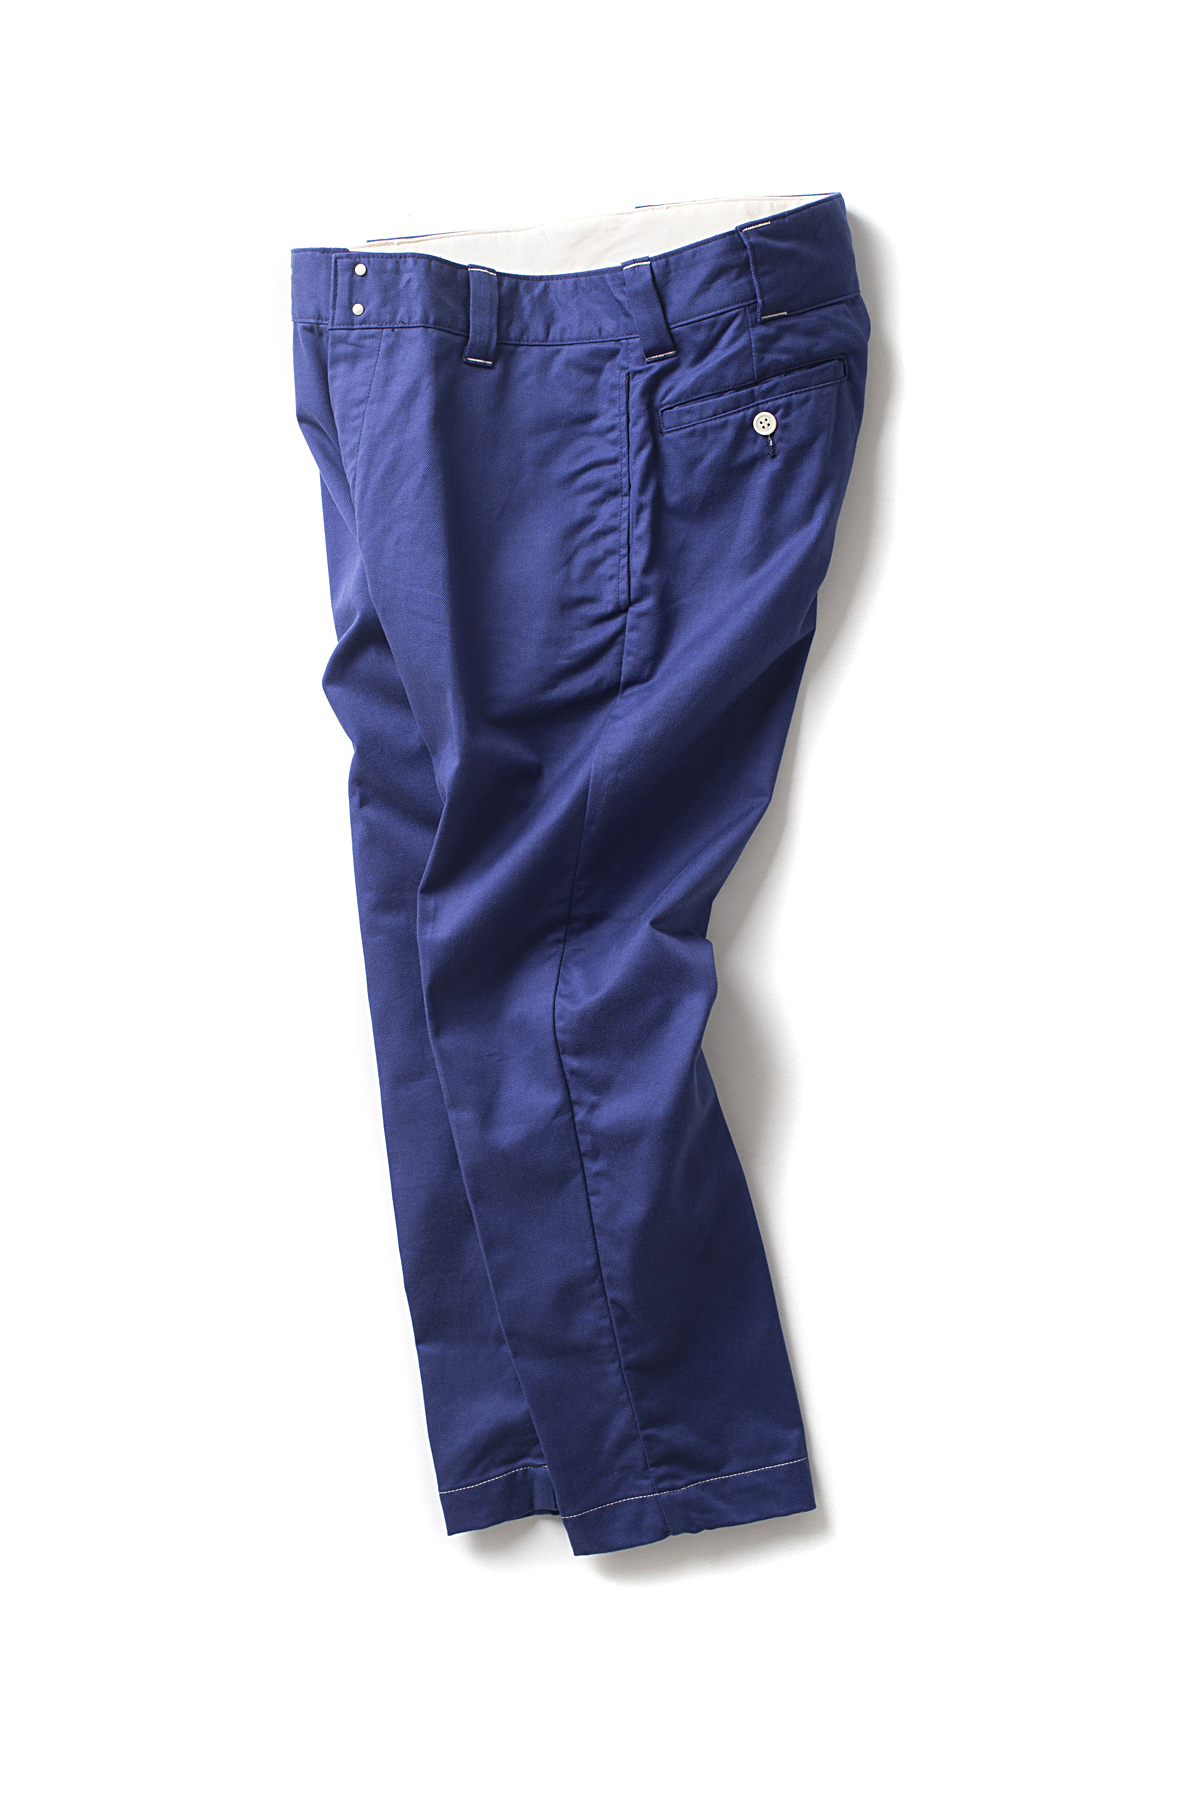 ordinary fits #WHITE : Chino Trousers (Blue)